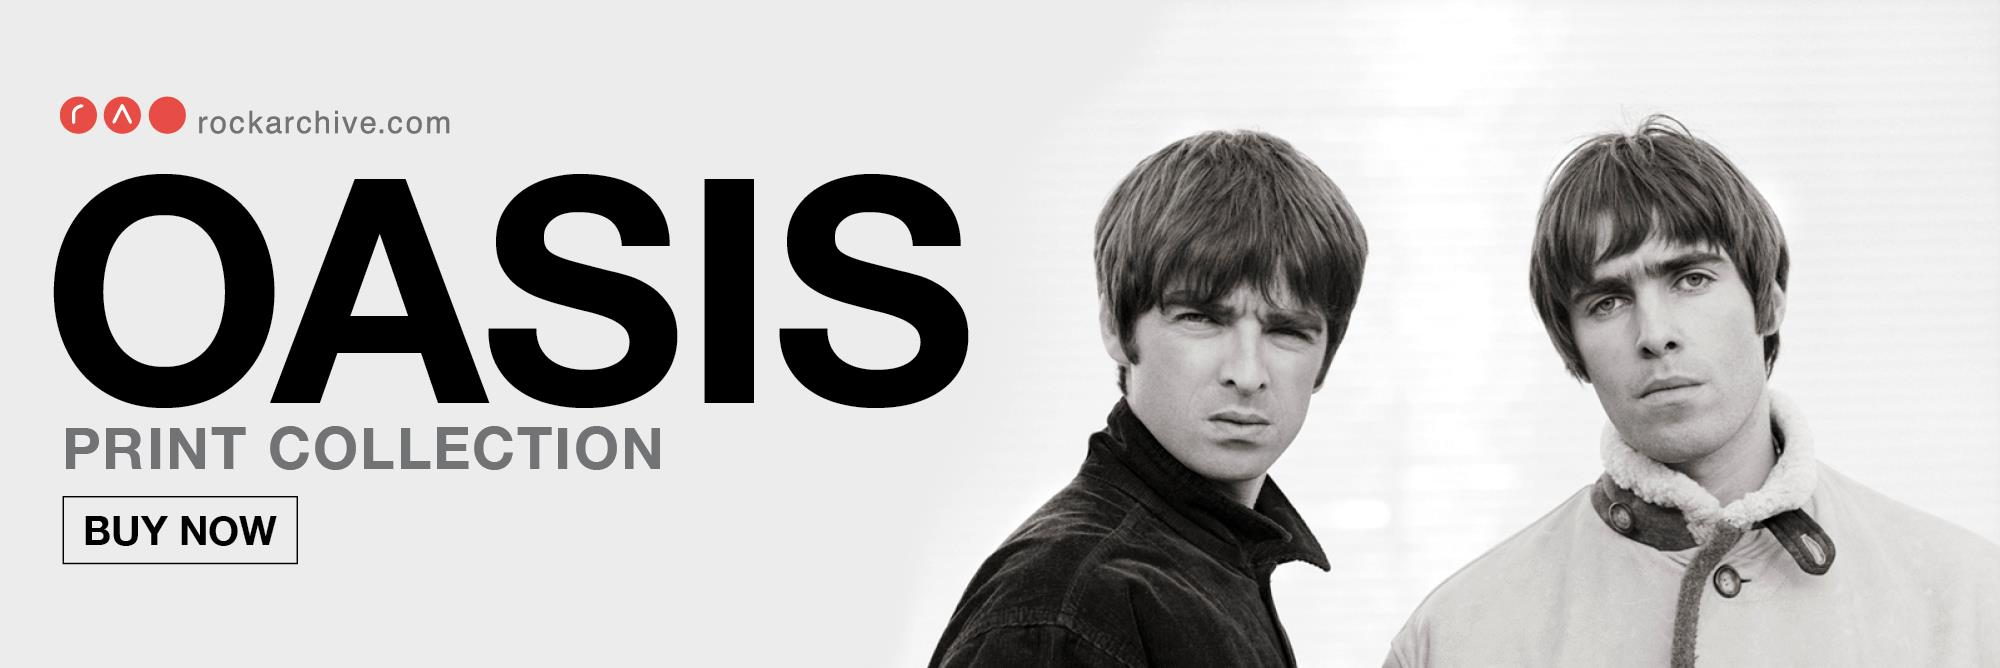 Oasis Print Collection Desktop Banner.jpg